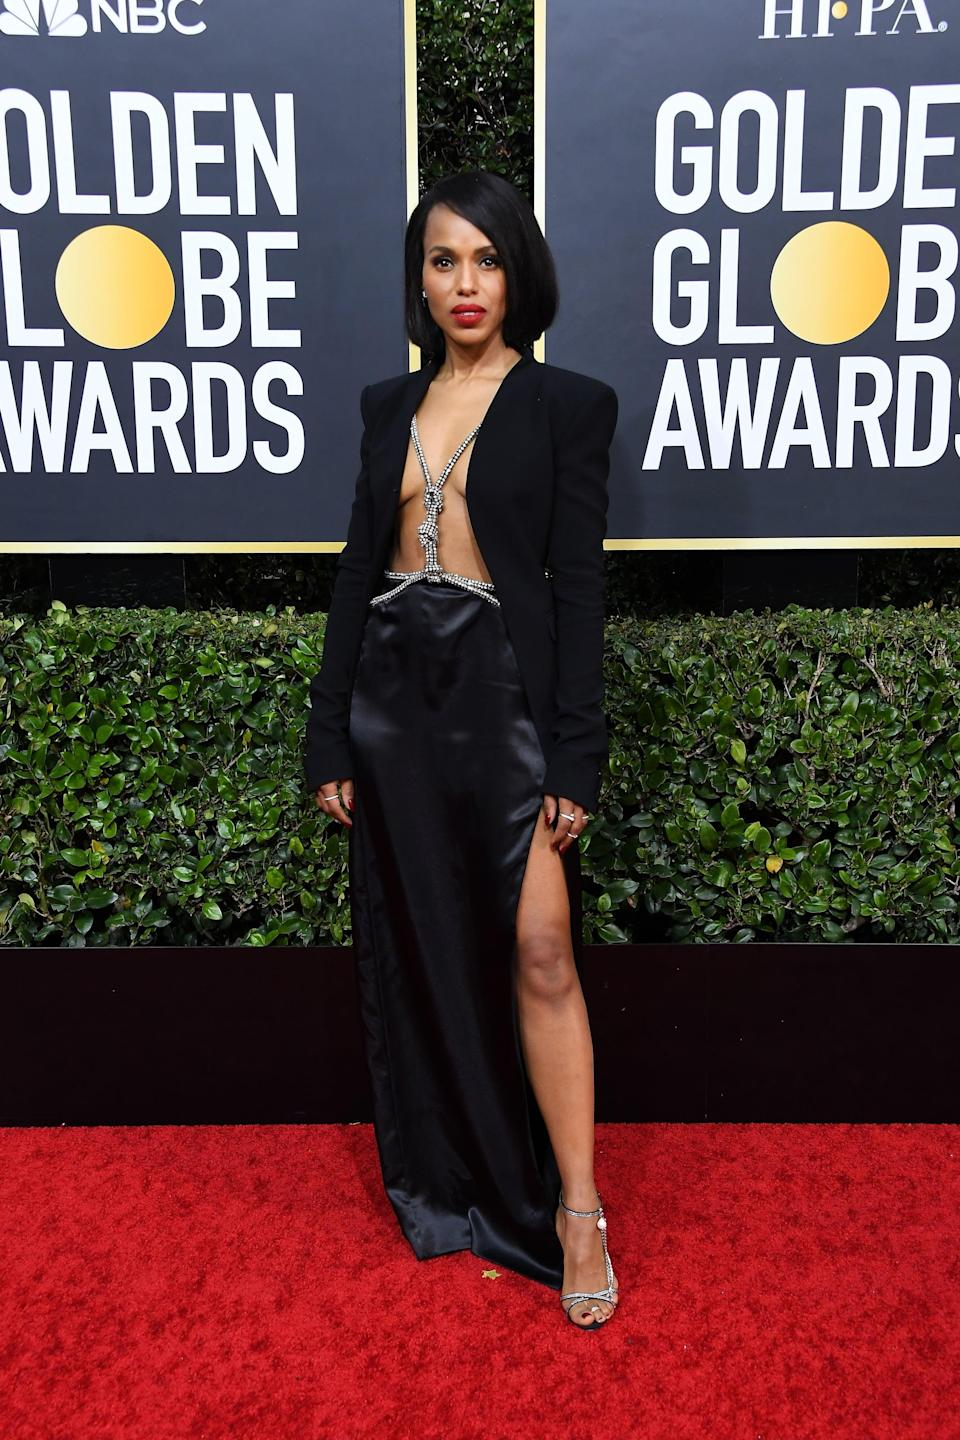 """<p><a class=""""link rapid-noclick-resp"""" href=""""https://www.popsugar.com/Kerry-Washington"""" rel=""""nofollow noopener"""" target=""""_blank"""" data-ylk=""""slk:Kerry Washington"""">Kerry Washington</a>'s Altuzarra look made quite the statement at the 2020 Golden Globes. The actress chose to go bra-less, accessorizing her sleek blazer with a thick body chain underneath, which hugged the waistline of her slitted silk skirt. Kerry, styled by Law Roach, finished the ensemble with striking Magda Butrym heels and Marli earrings.</p>"""